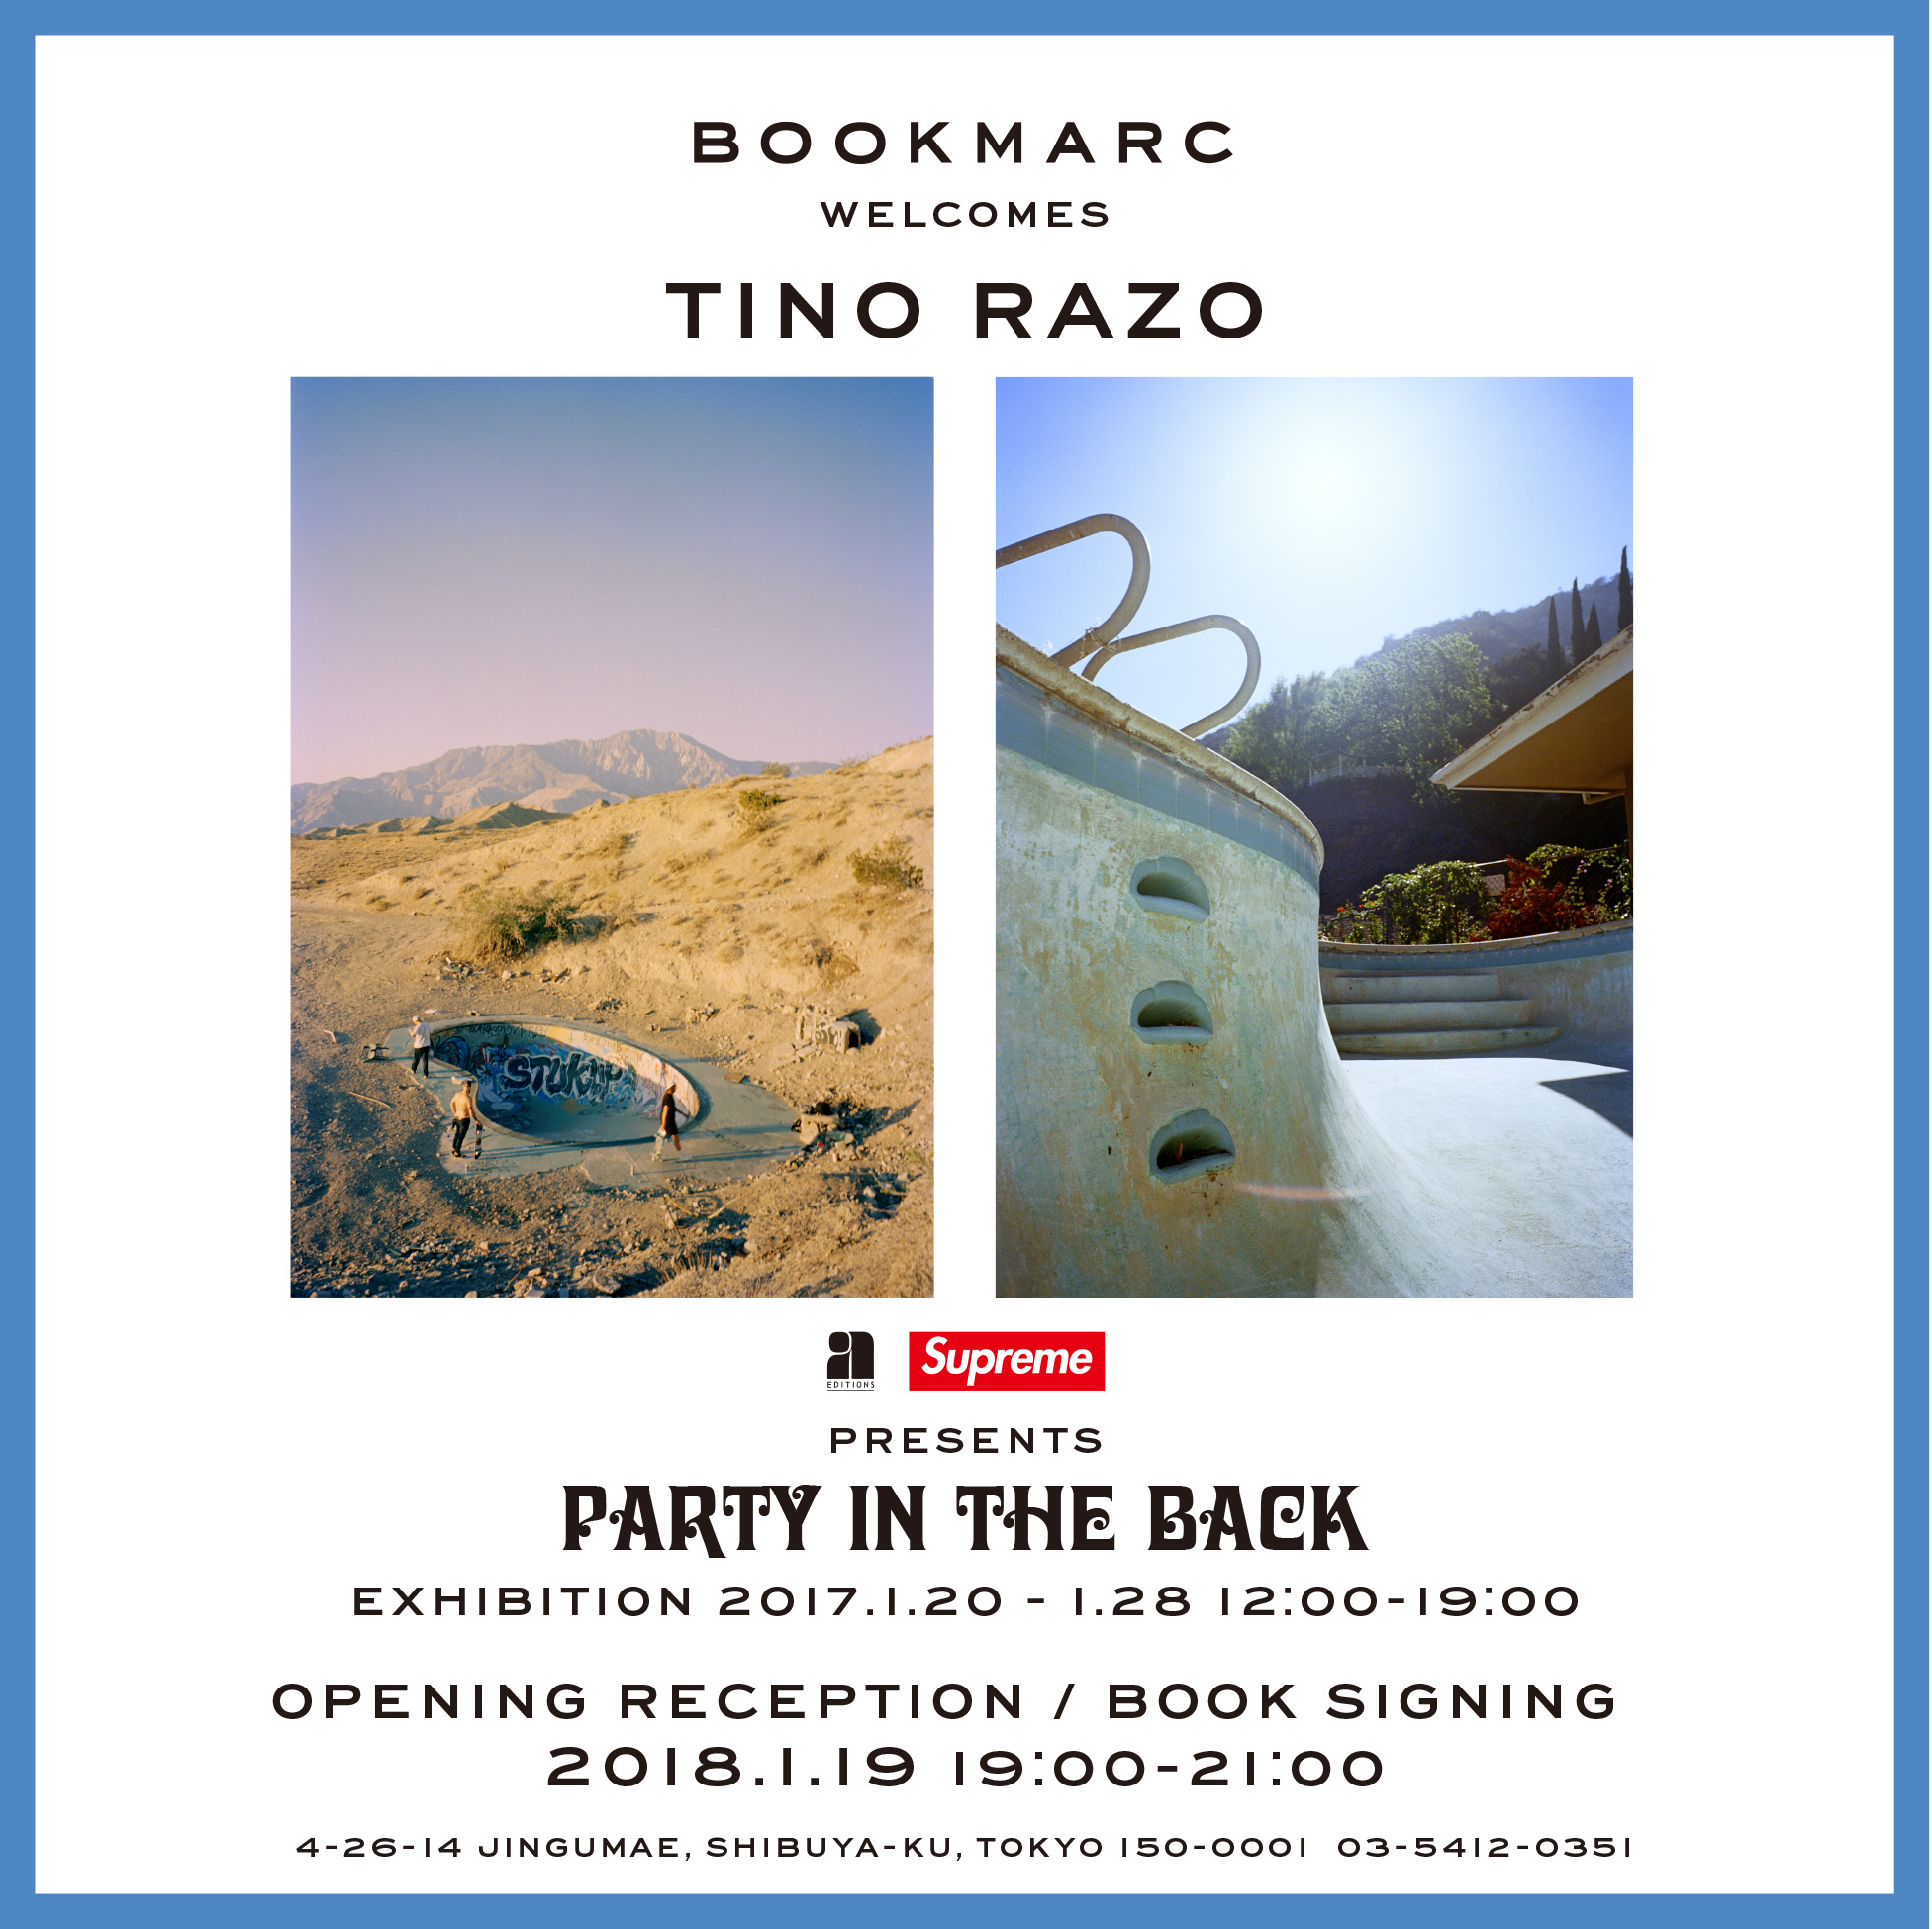 Party In The Back - Bookmarc Toyko Event